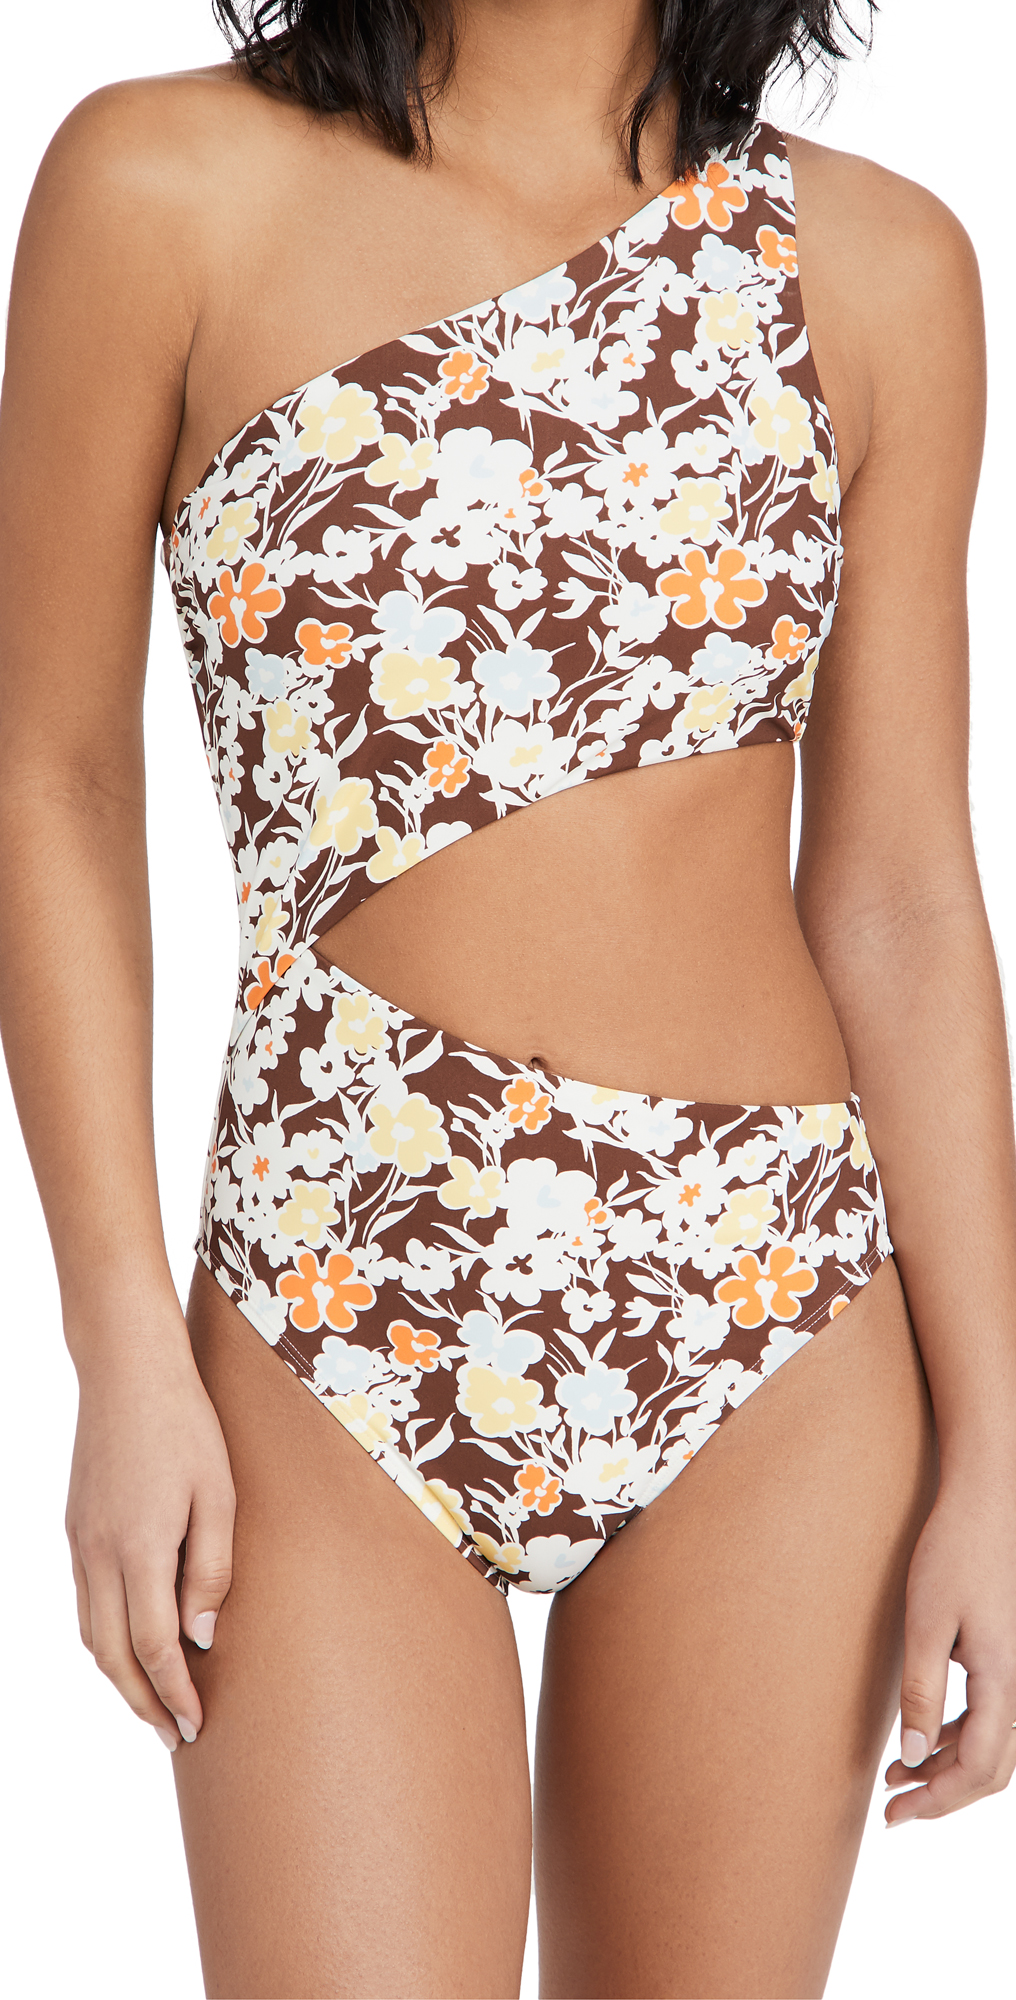 Tory Burch One Shoulder One Piece Swimsuit